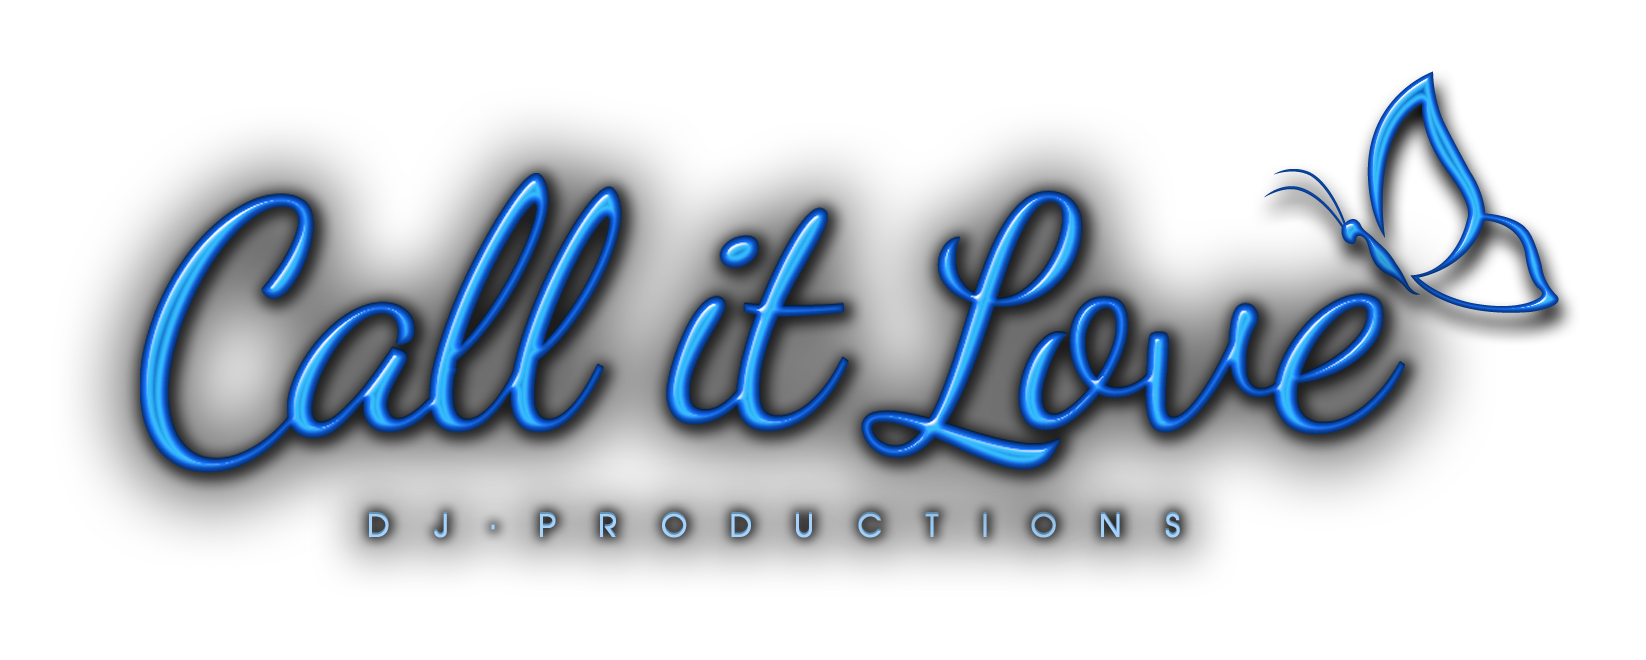 Call it Love DJ PRODUCTIONS